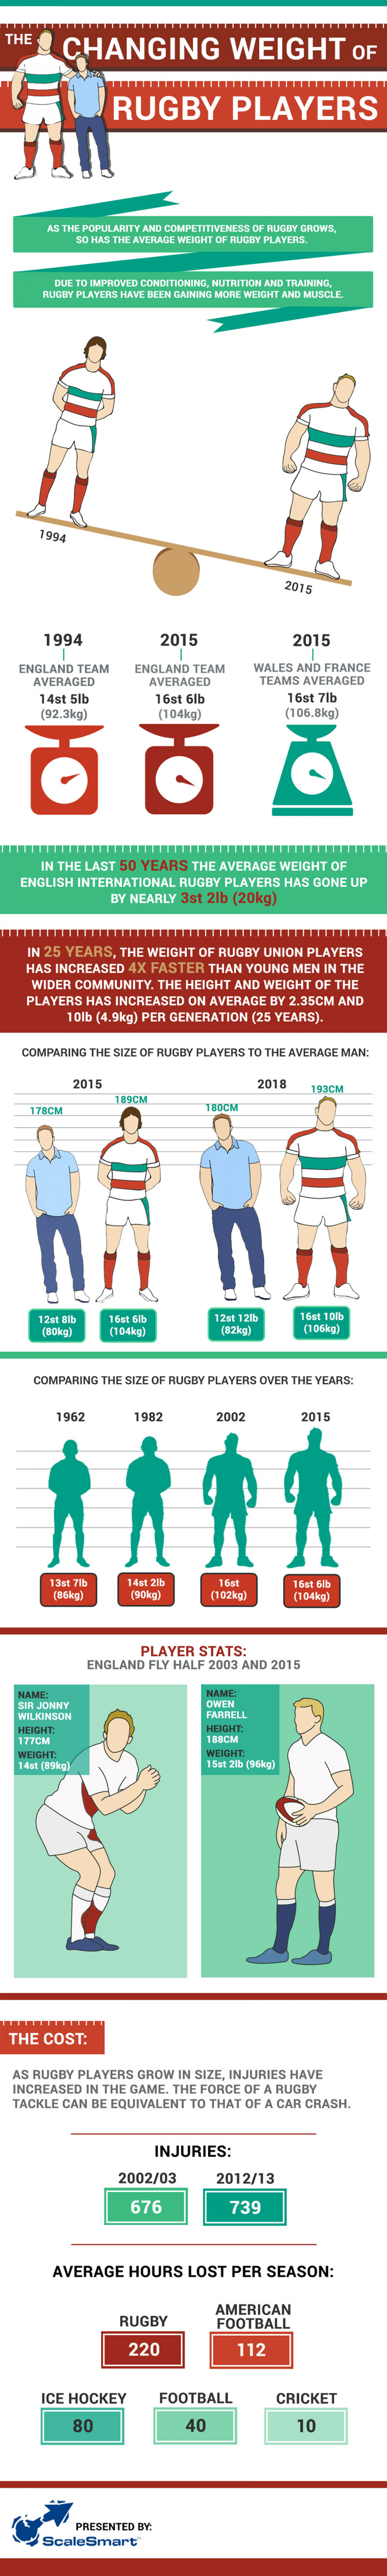 The Changing Weight of Rugby Players  Infographic